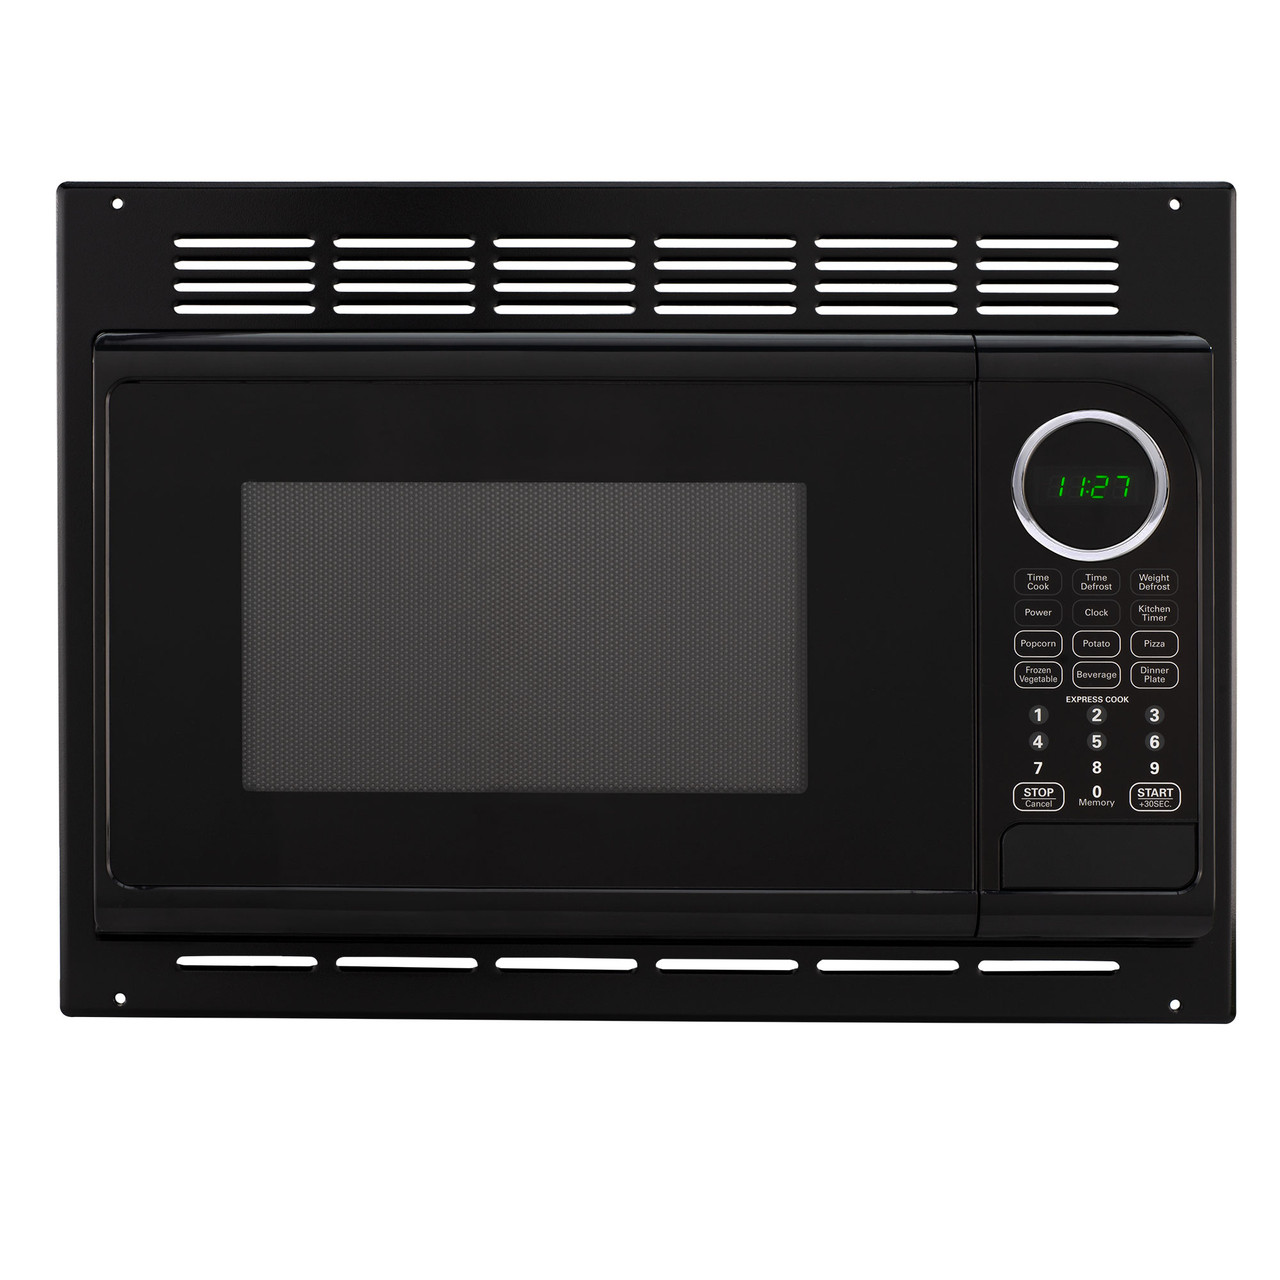 Greystone RV Trailer Built-in Microwave Oven W//Trim Kit Black